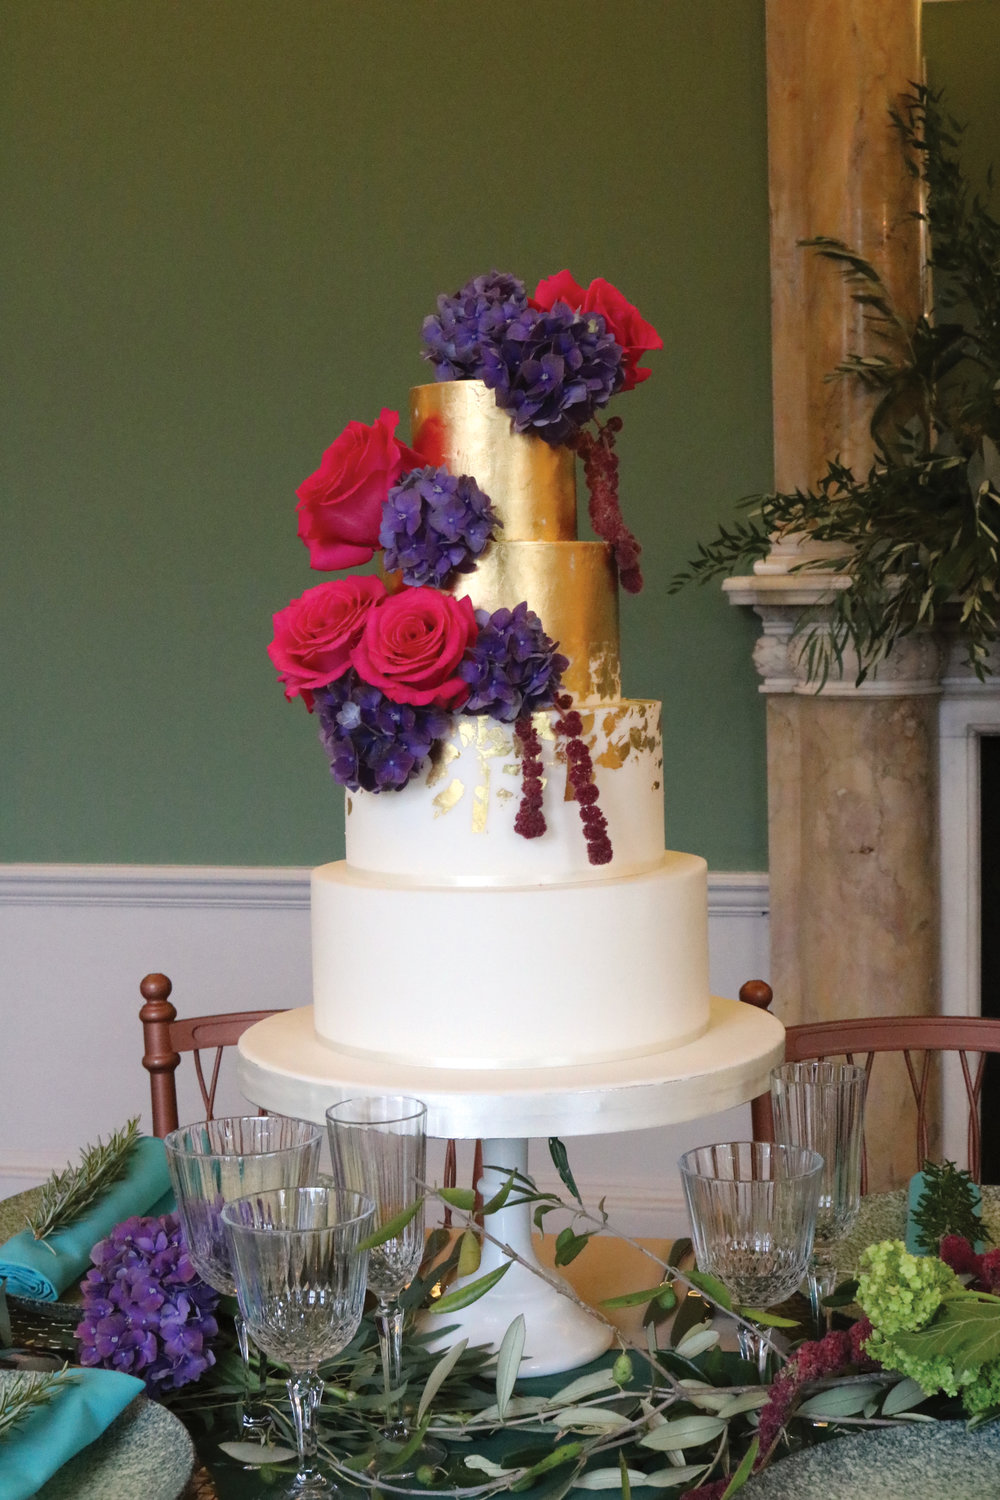 Gold leaf and fresh flowers on this wedding cake at Gunnersbury Park in Ealing